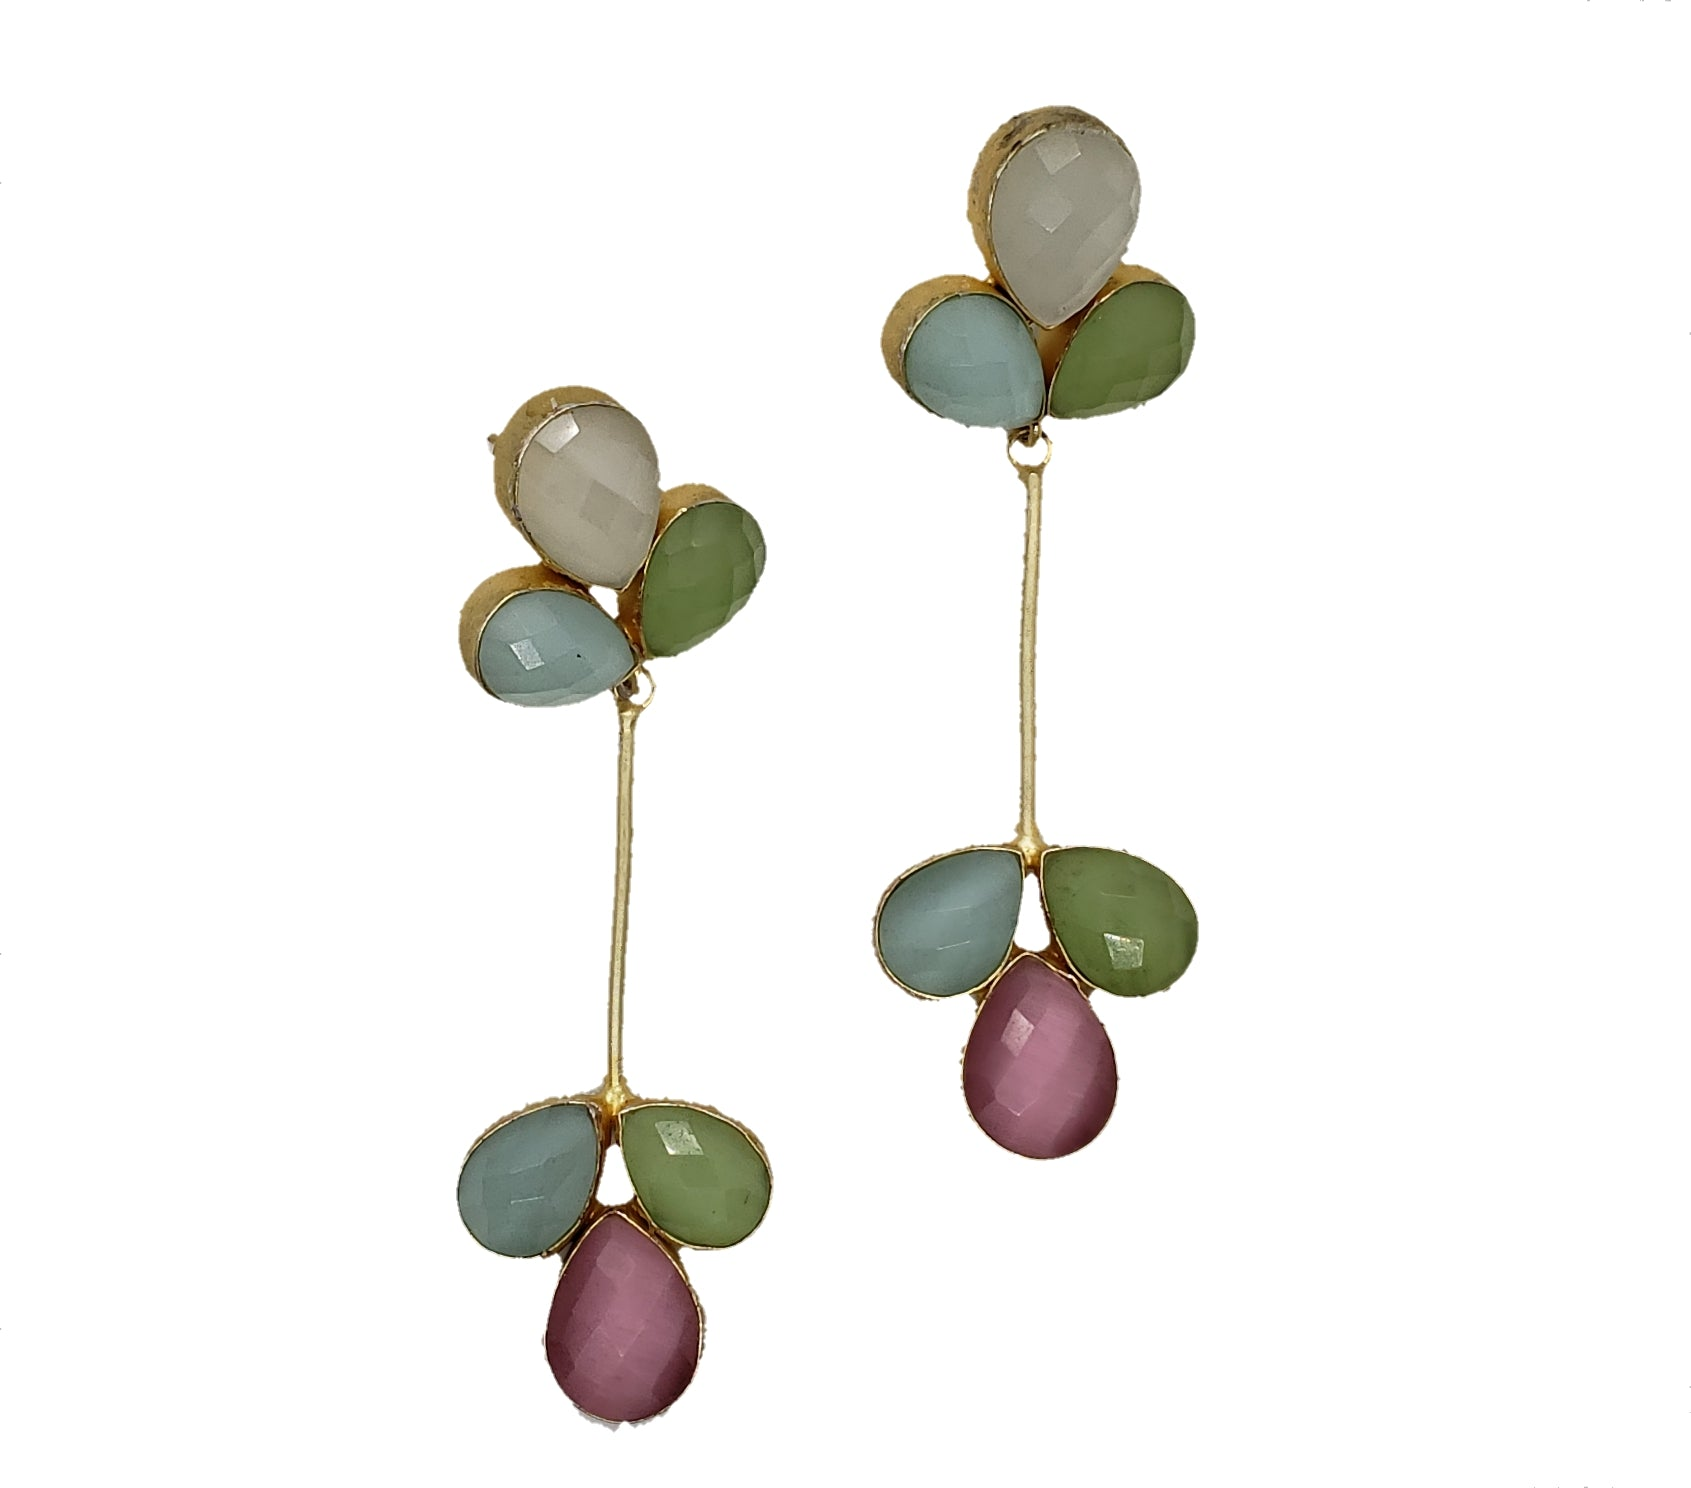 Pastel Tear-Drop Earrings - The Bauble Shop